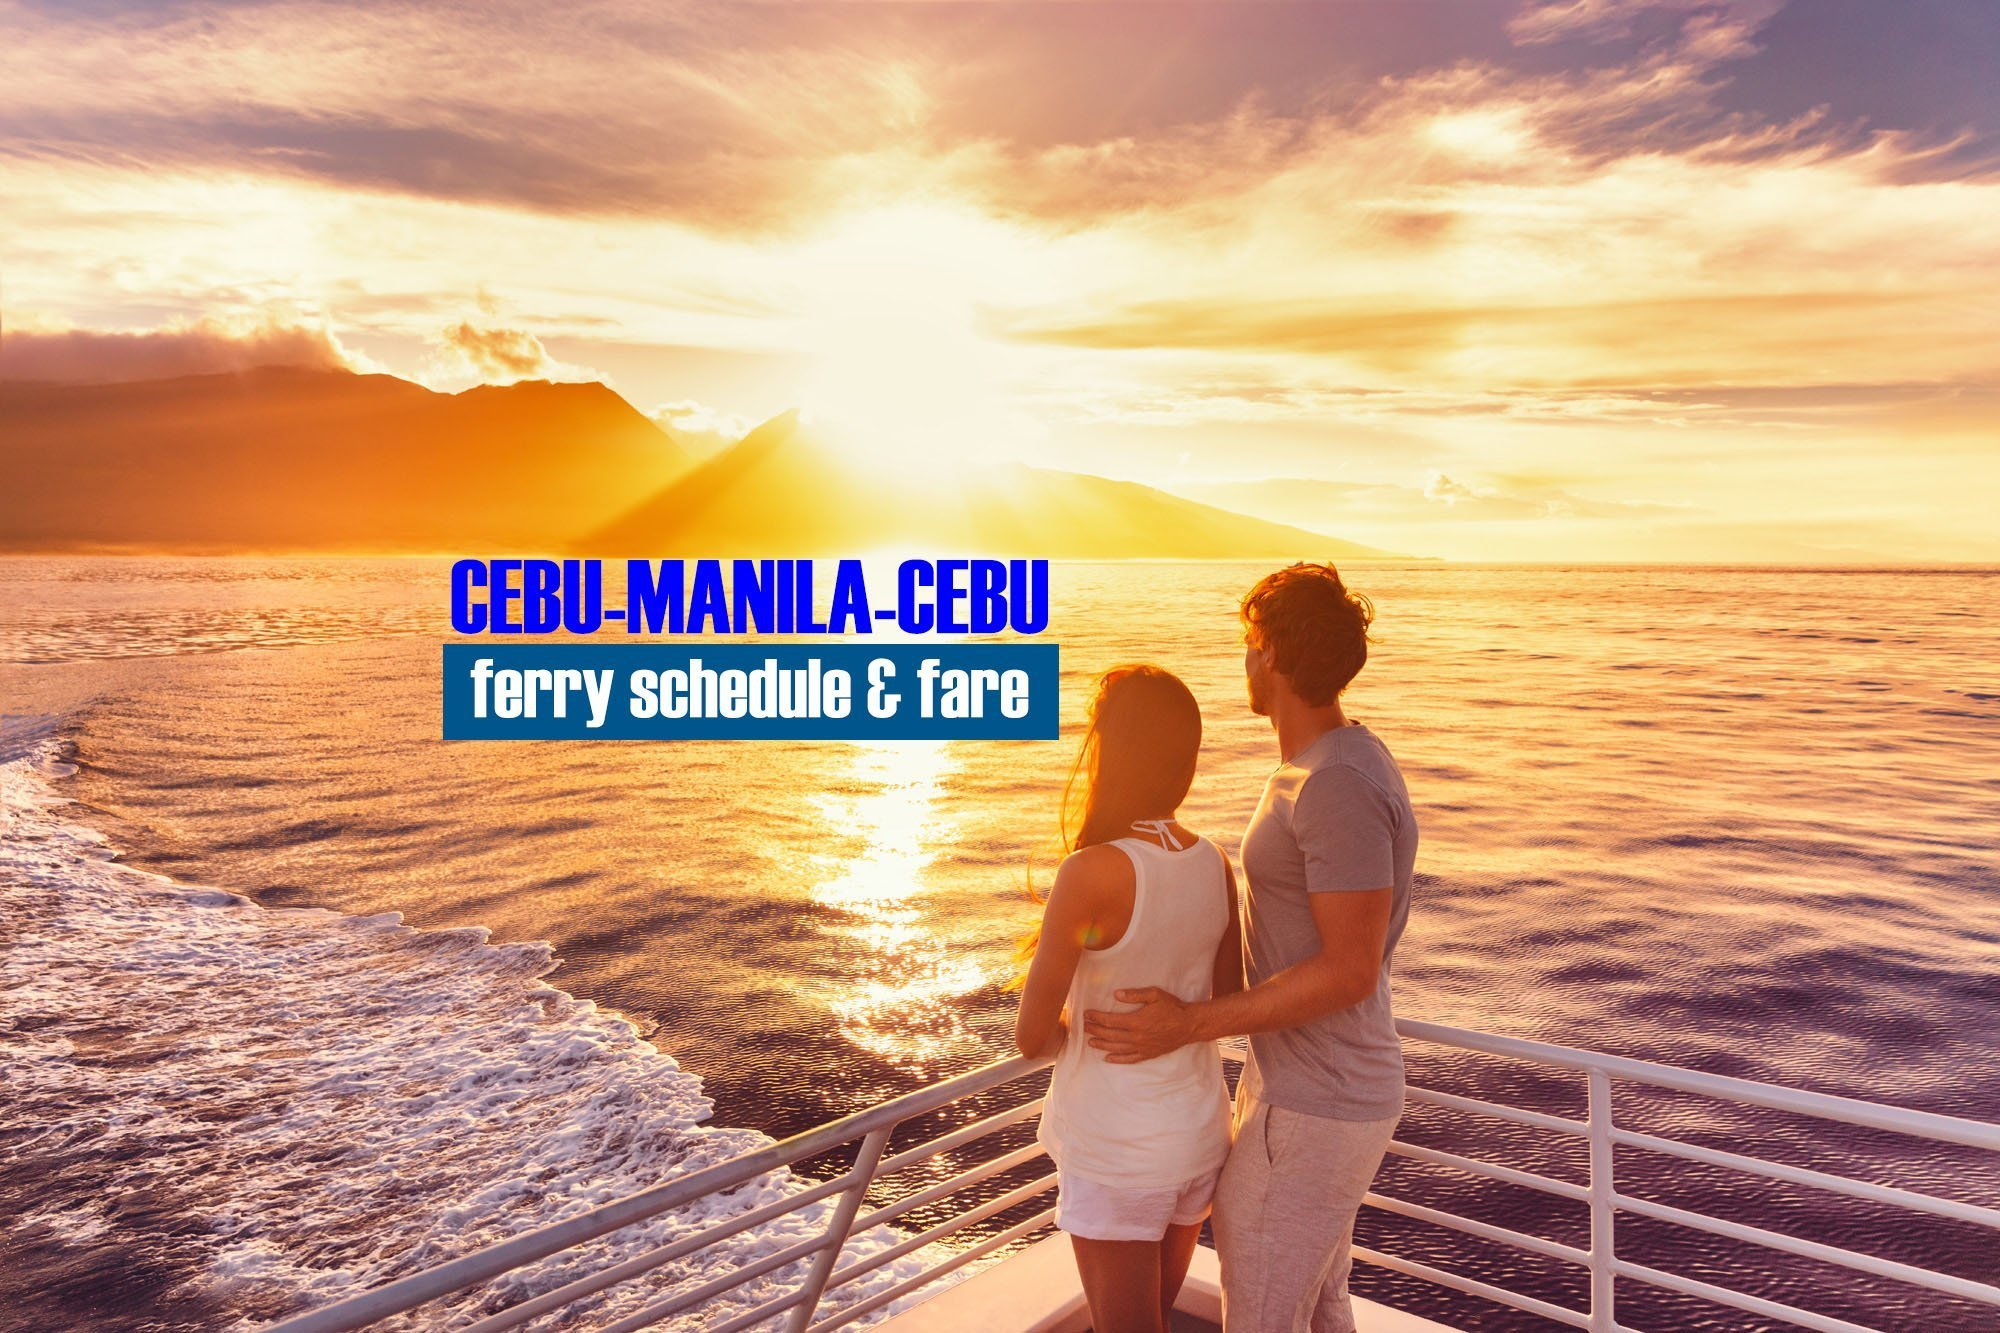 Cebu to Manila: 2020 Boat Schedule and Fare